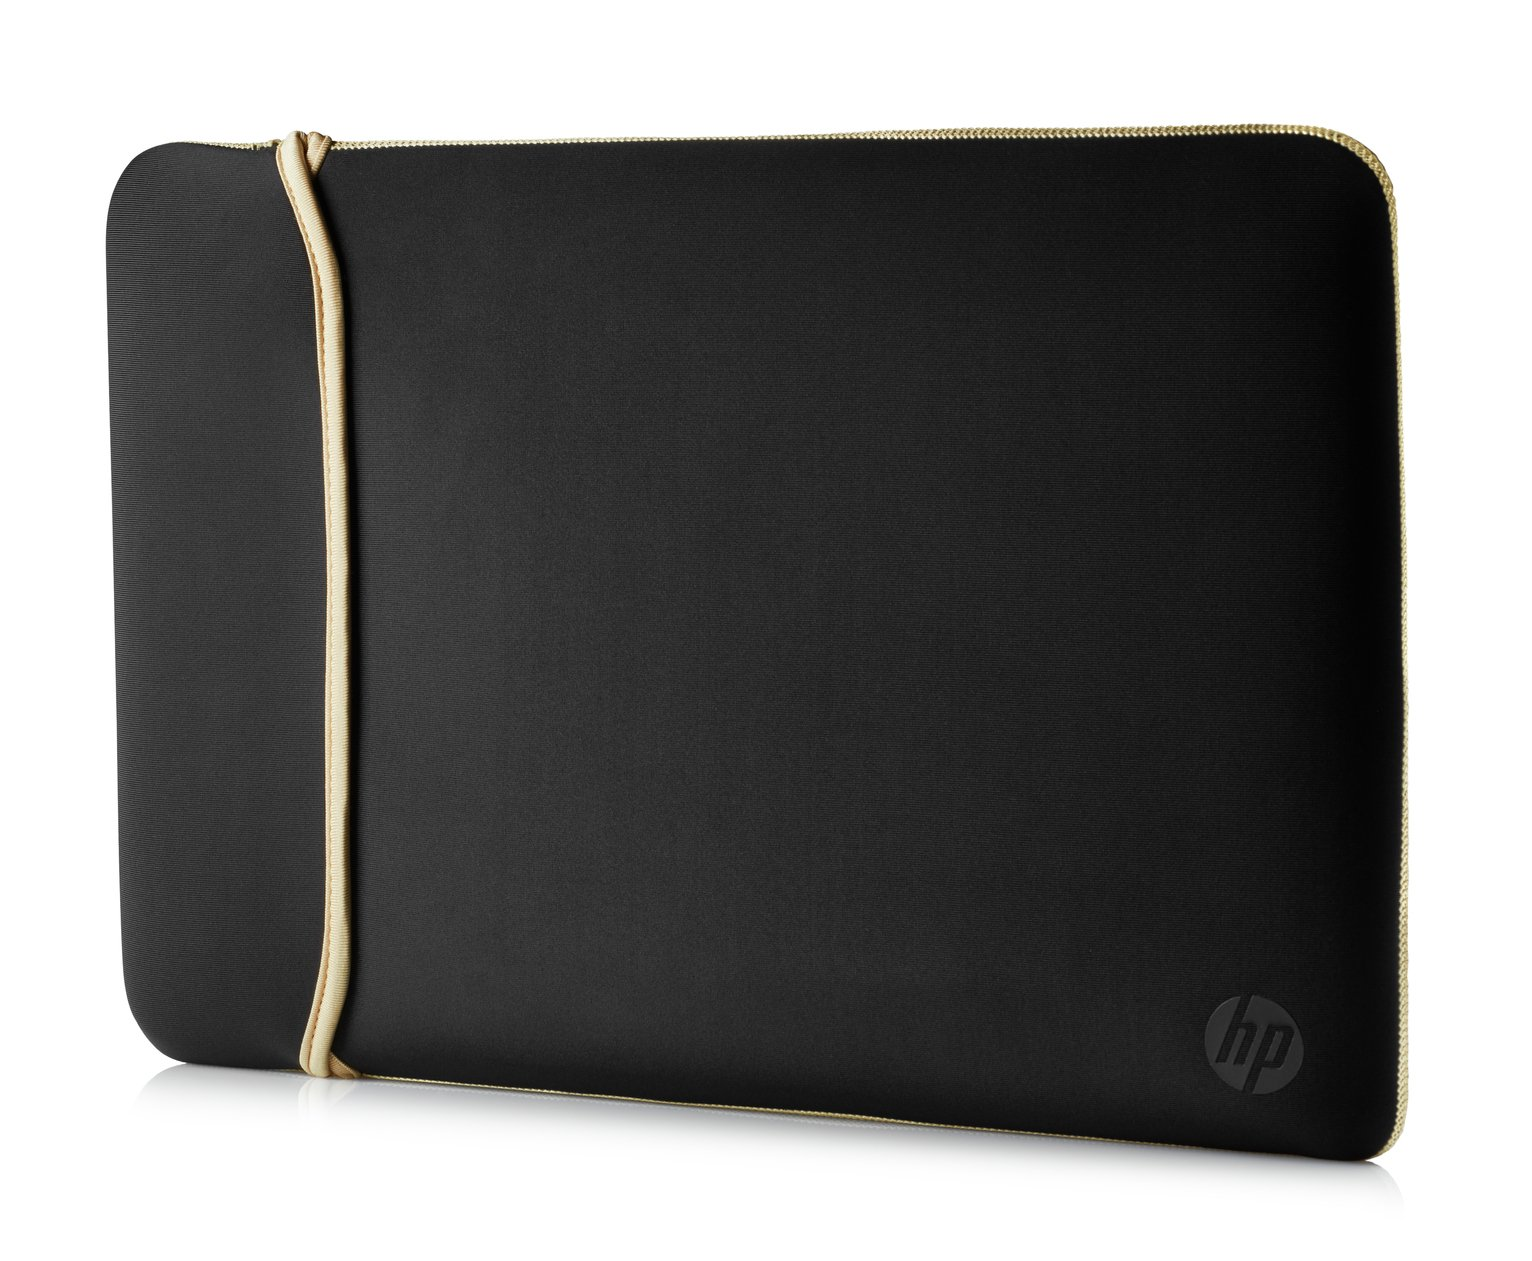 HP 14 Inch Reversible Laptop Sleeve - Gold & Black from HP